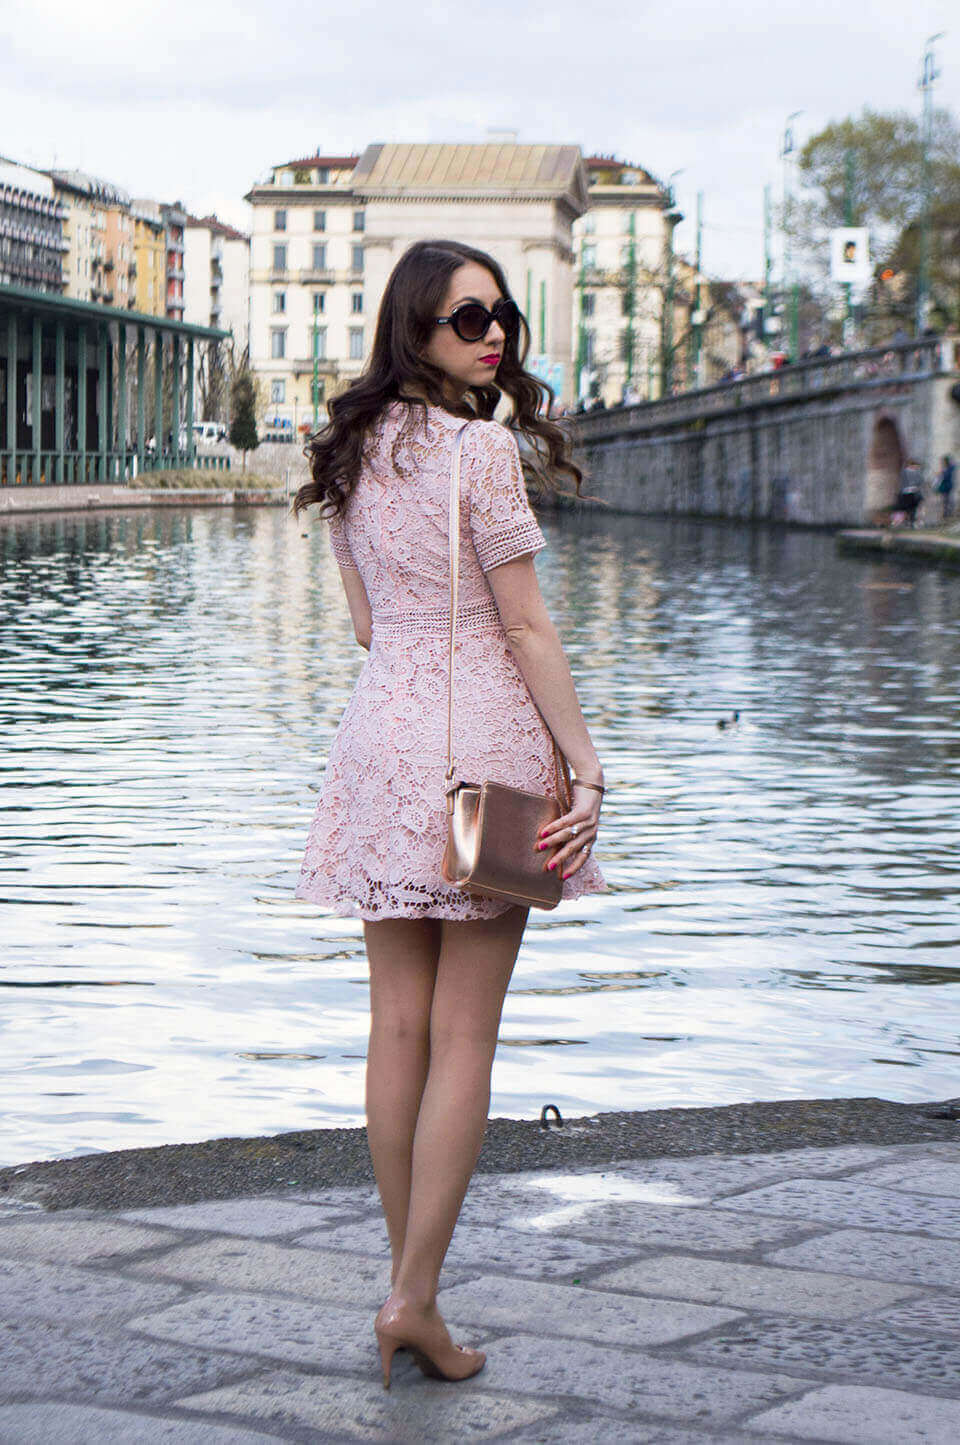 Lace dress - Manu Luize outfit